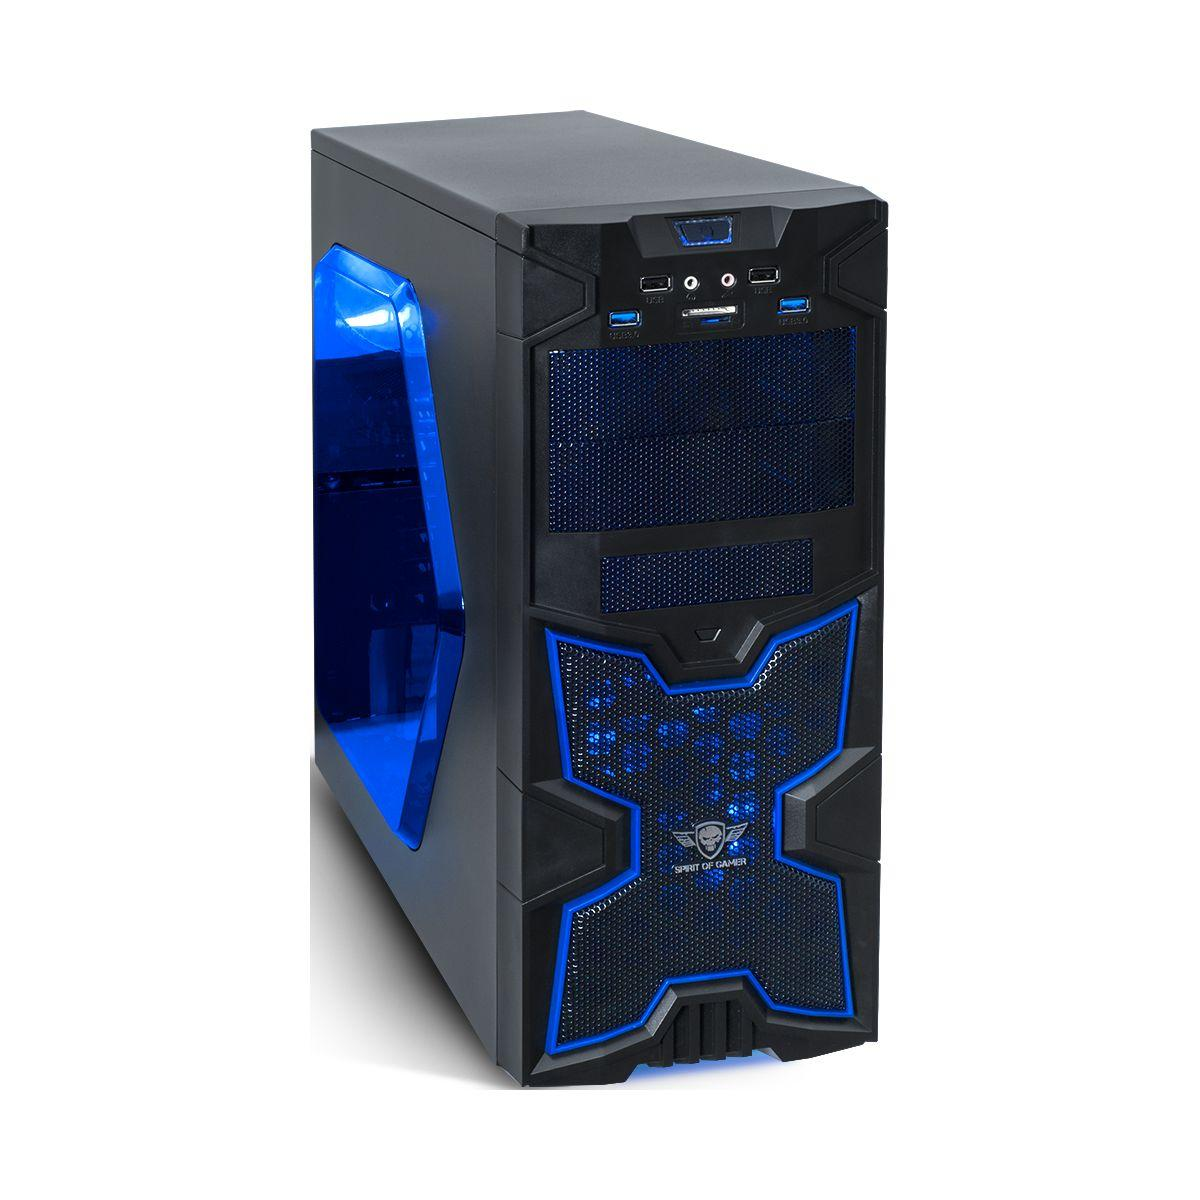 Boitier pc spirit of gamer x-fighters 41 blue mana tour - 2% de remise imm�diate avec le code : fete2 (photo)